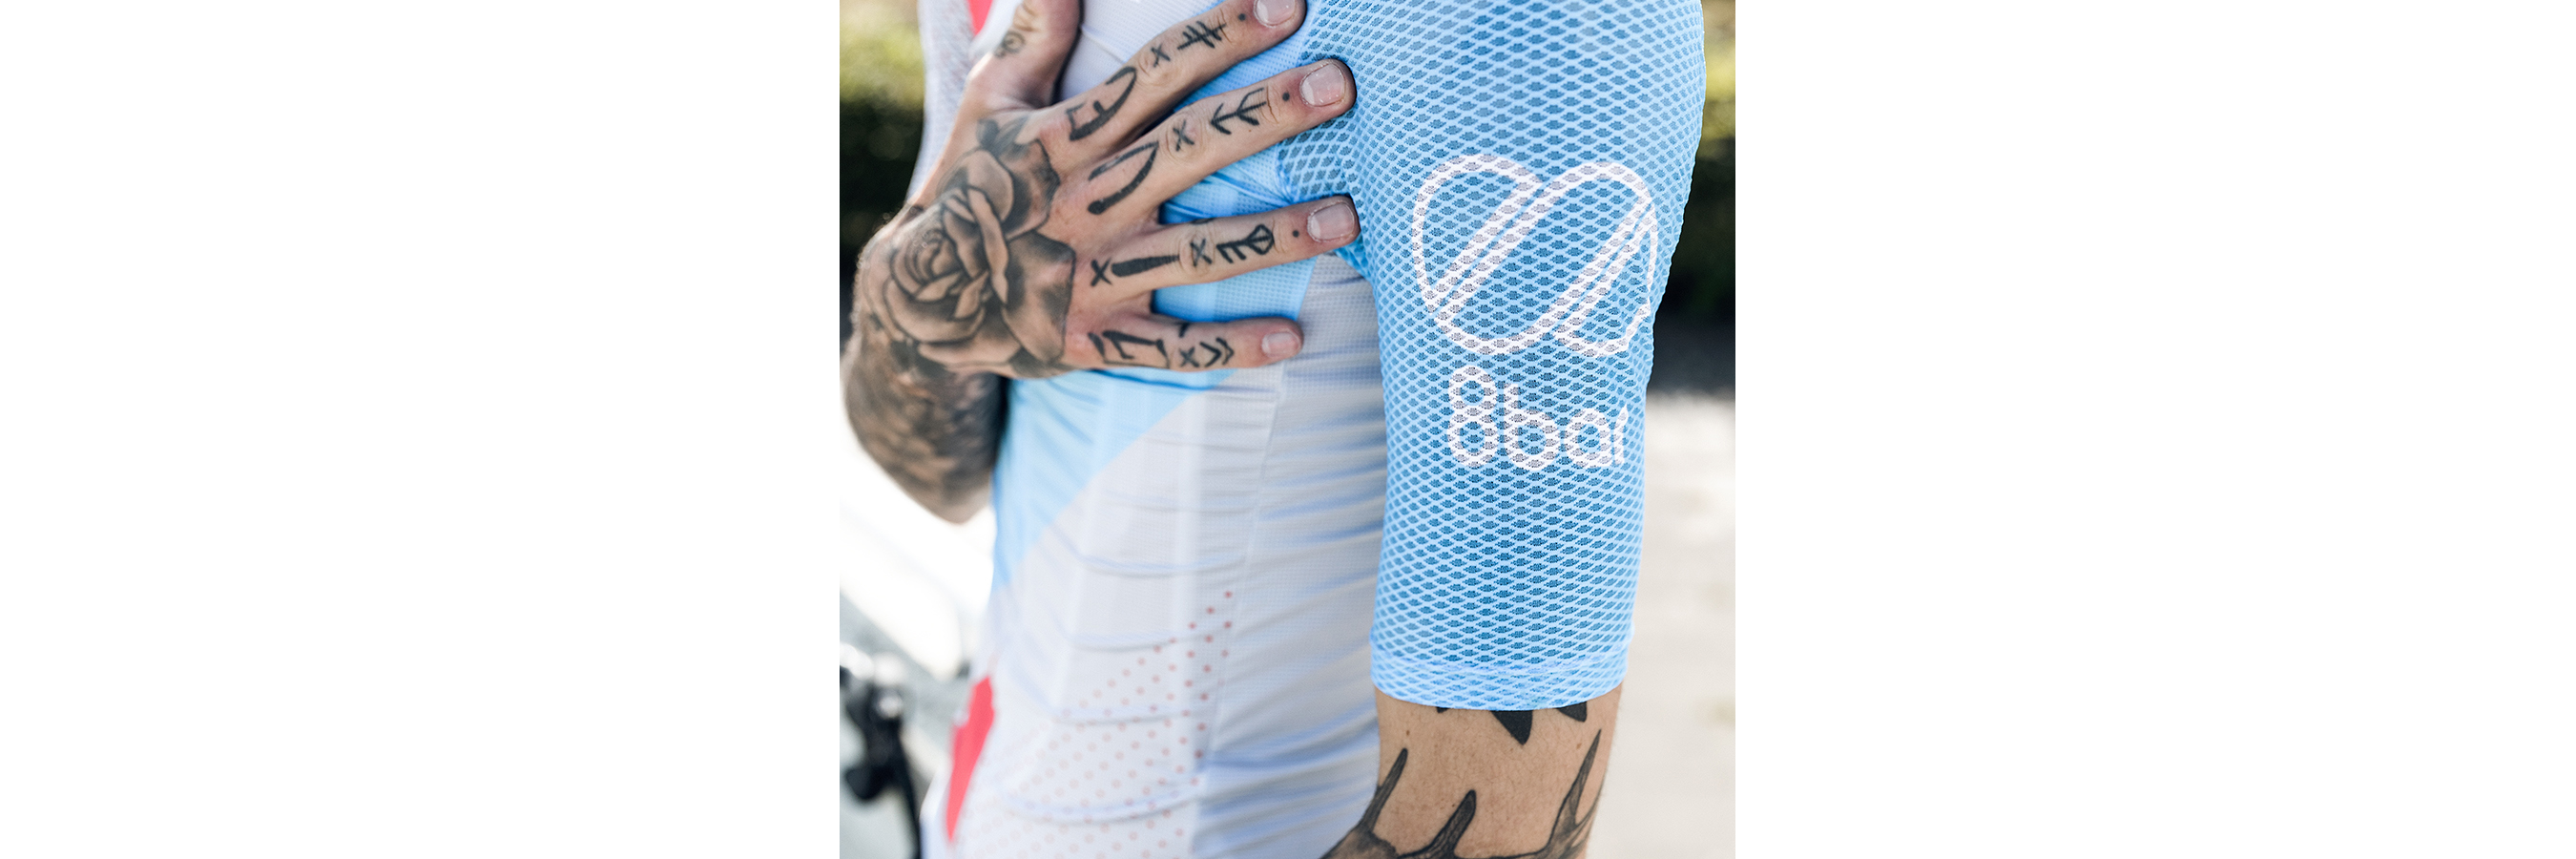 Picture of a tattooed man's trunk wearing a cycling jersey, the 8bar club jersey. His right hand is on his left pectoral.